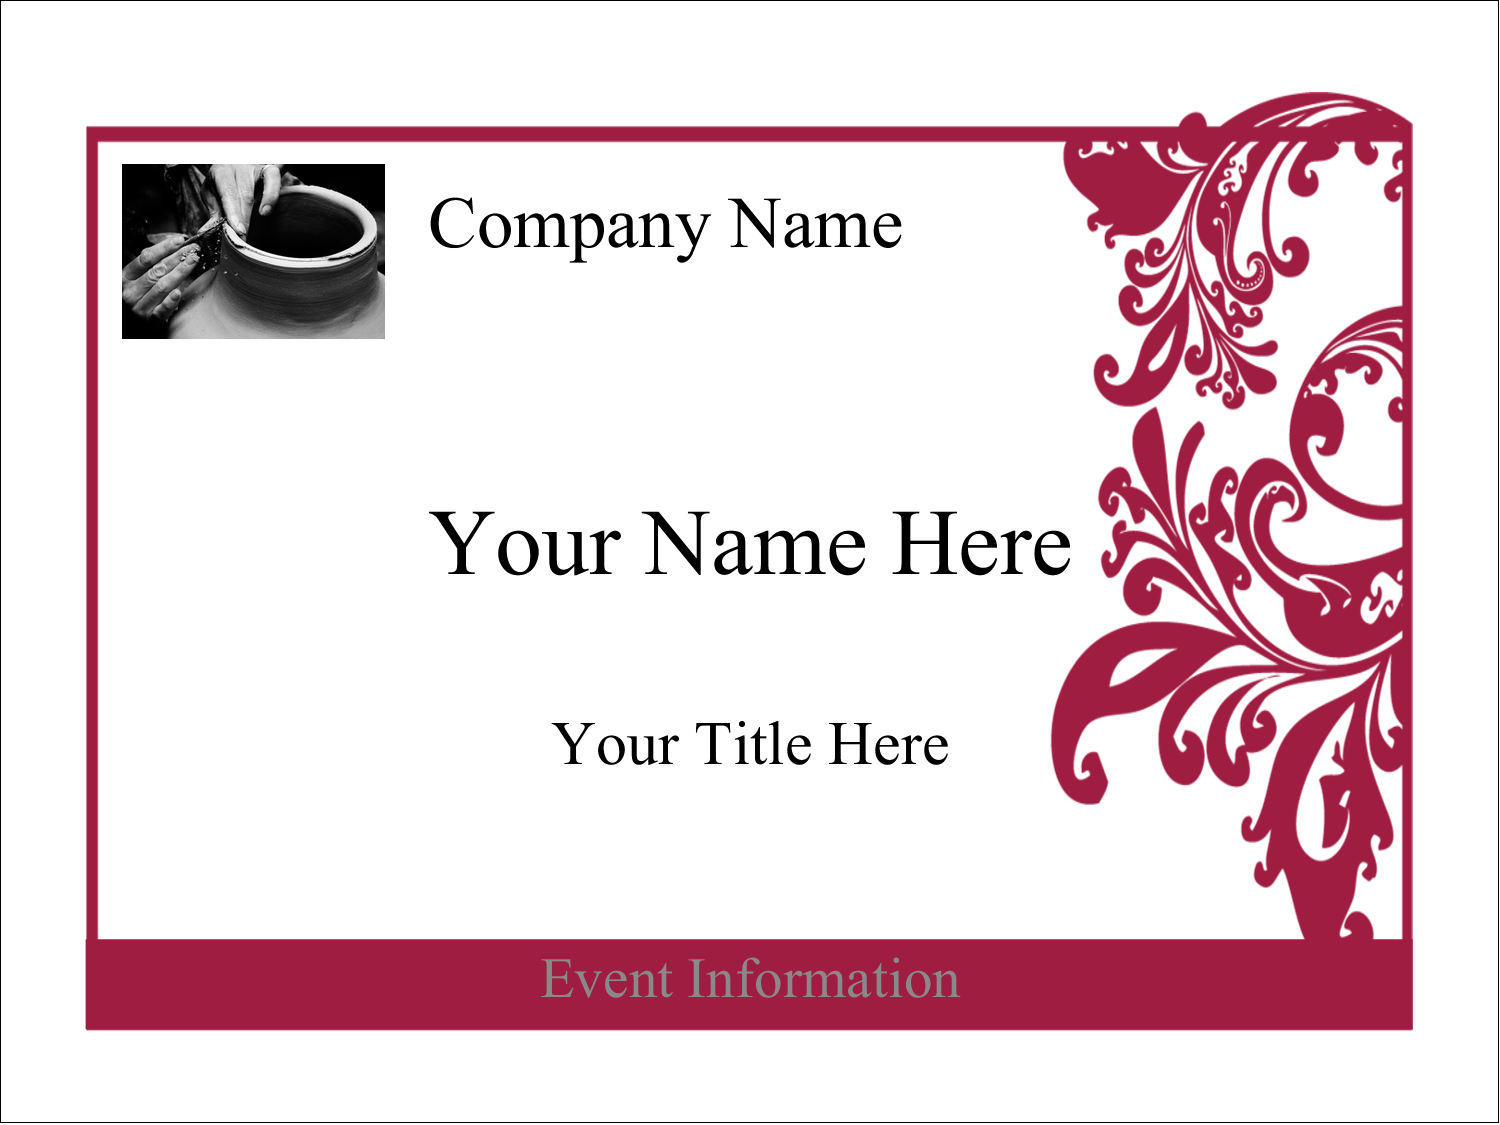 "4"" x 3"" Name Tags - Black and Red Art"